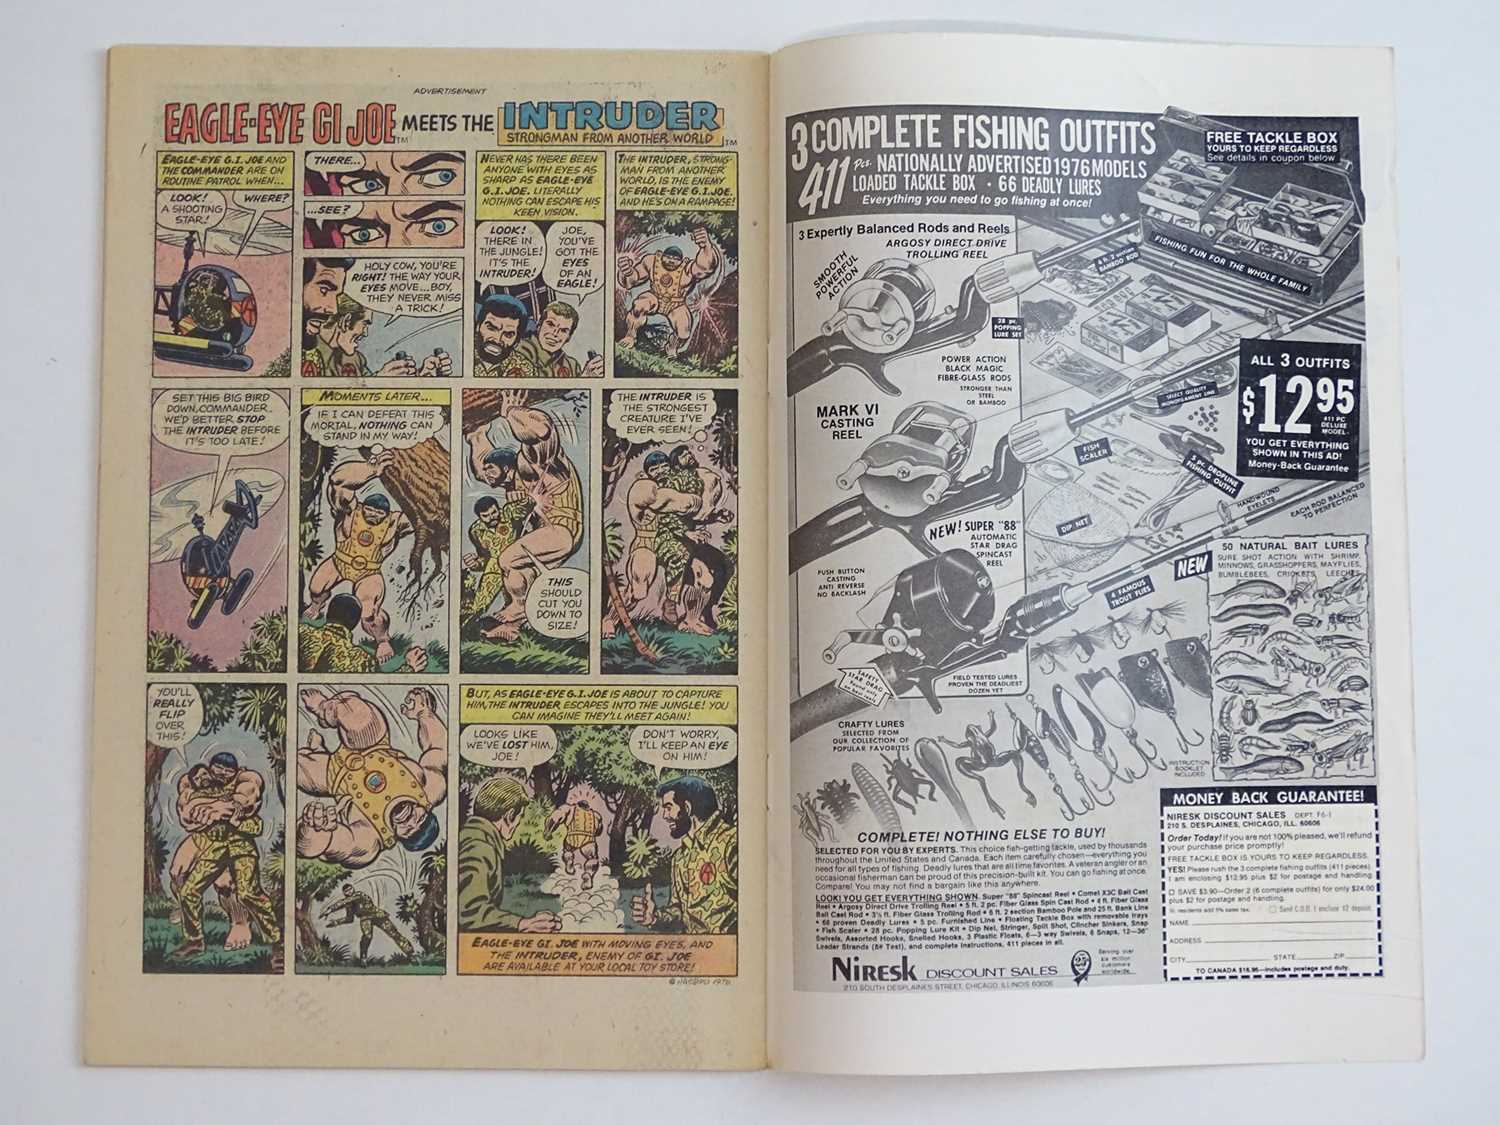 ETERNALS #1 - (1976 - MARVEL) - HOT Key book + Origin and First appearances of the Eternals (Ikaris, - Image 4 of 9